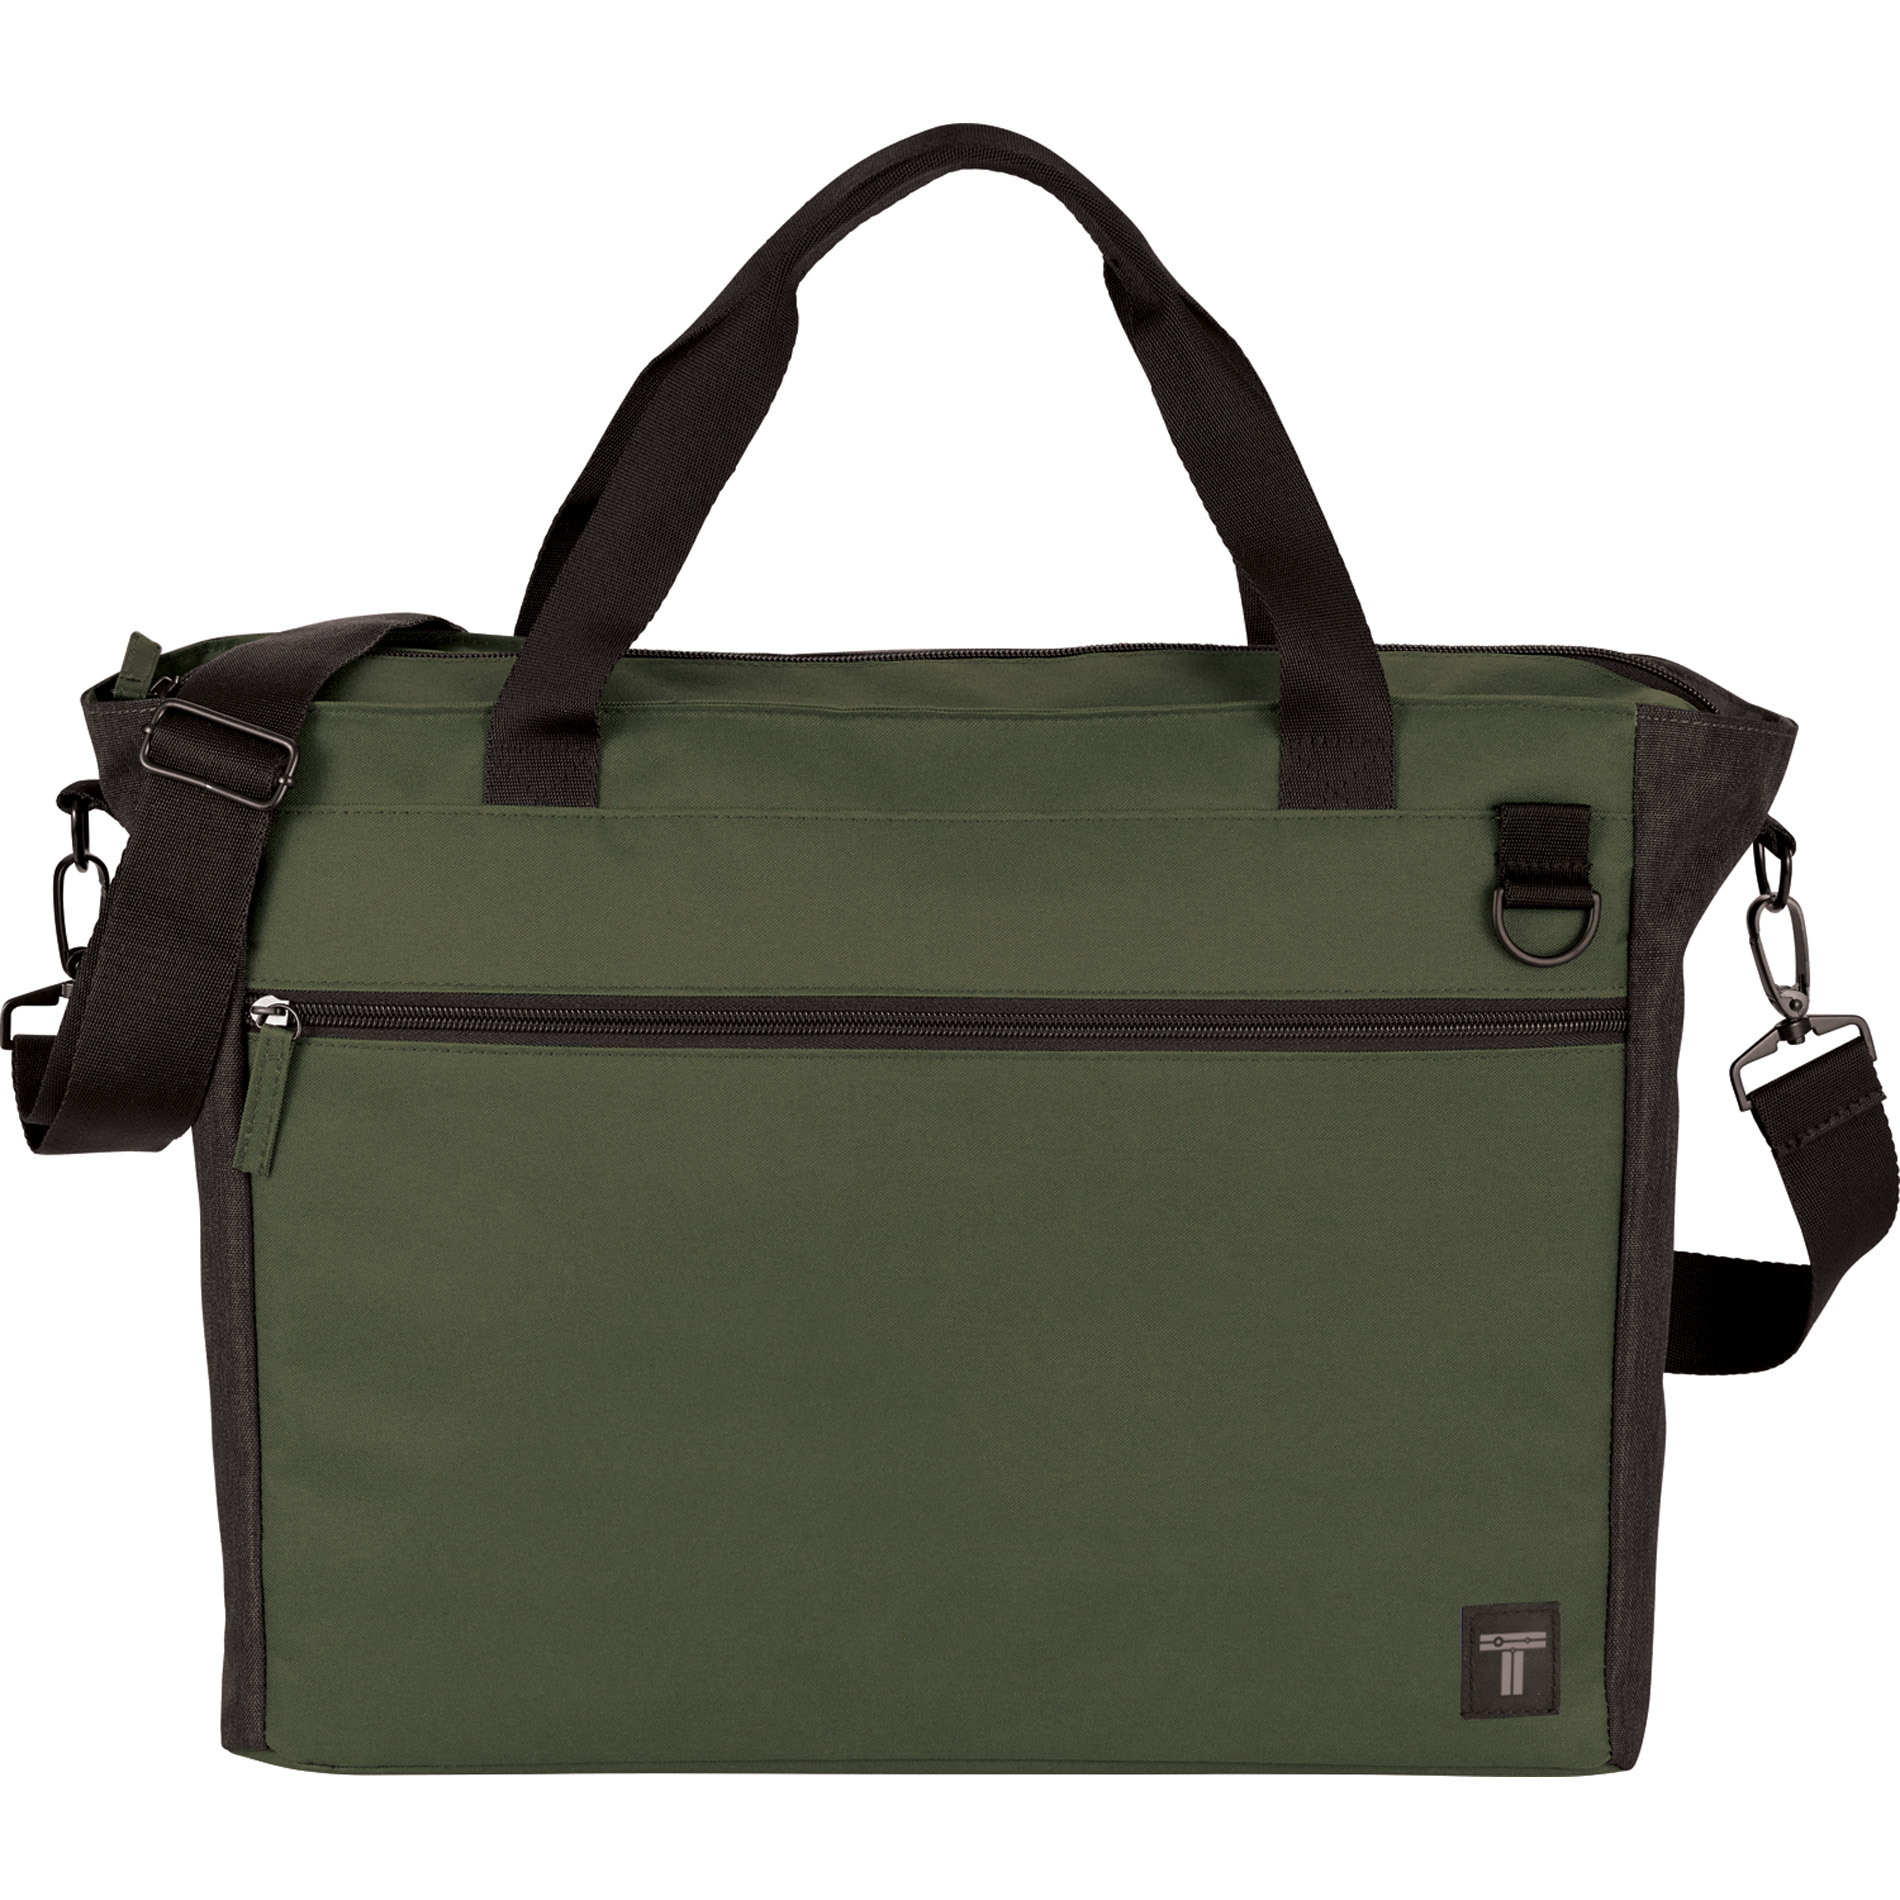 "Tranzip 2020-05 - Brief 15"" Computer Tote"